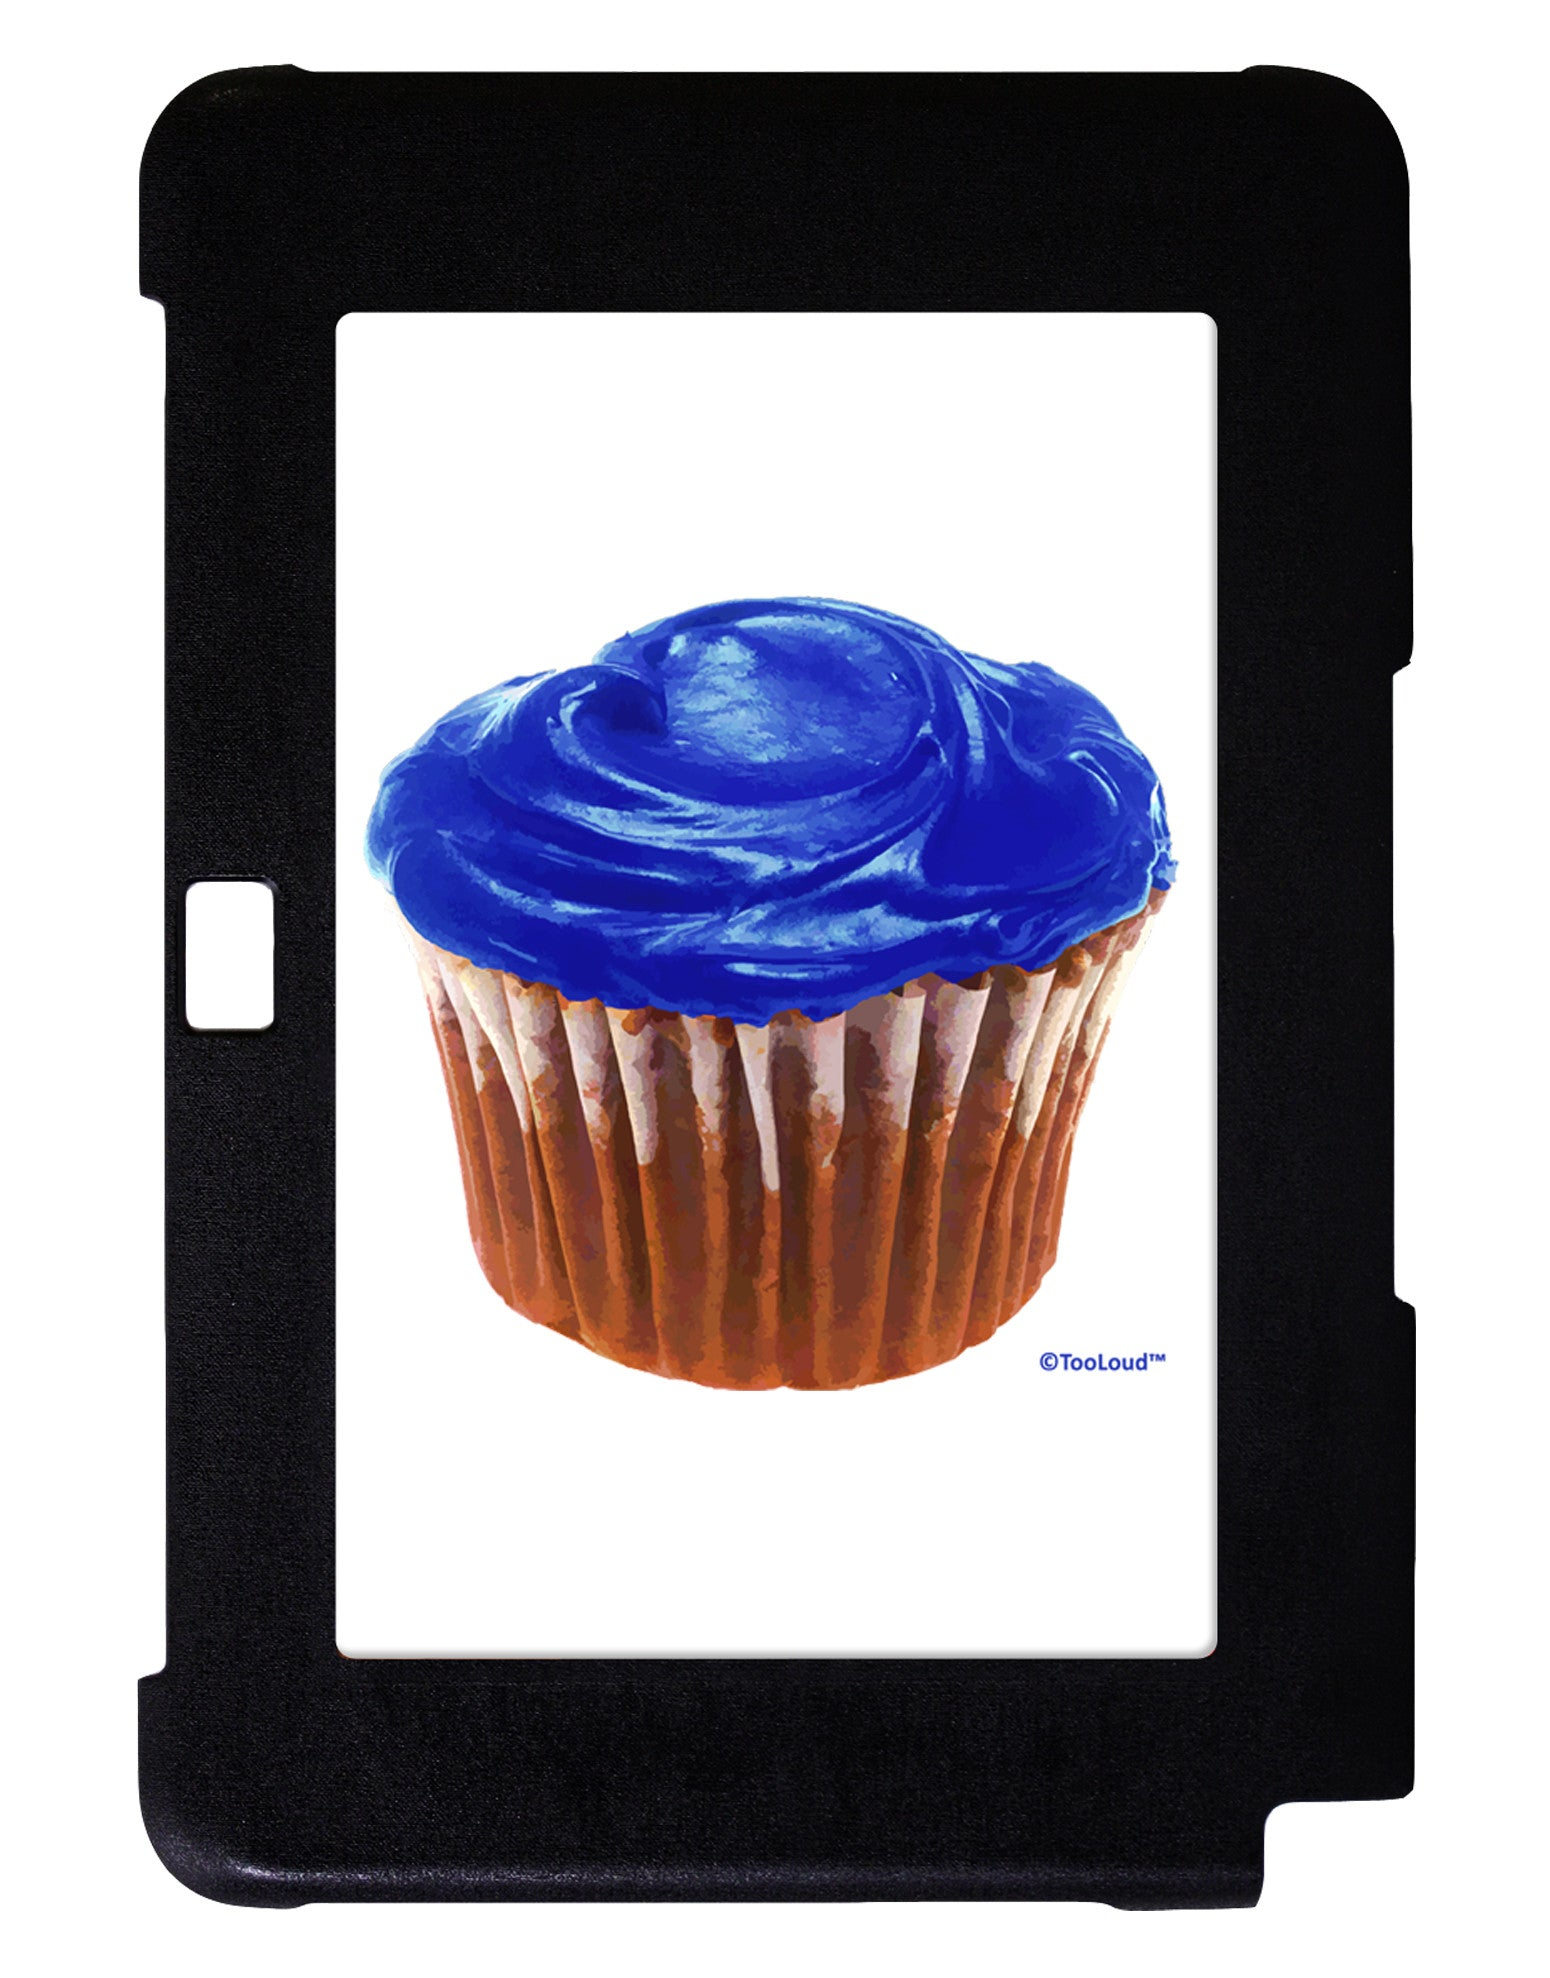 Giant Bright Blue Cupcake Galaxy Note 10.1 Case  by TooLoud